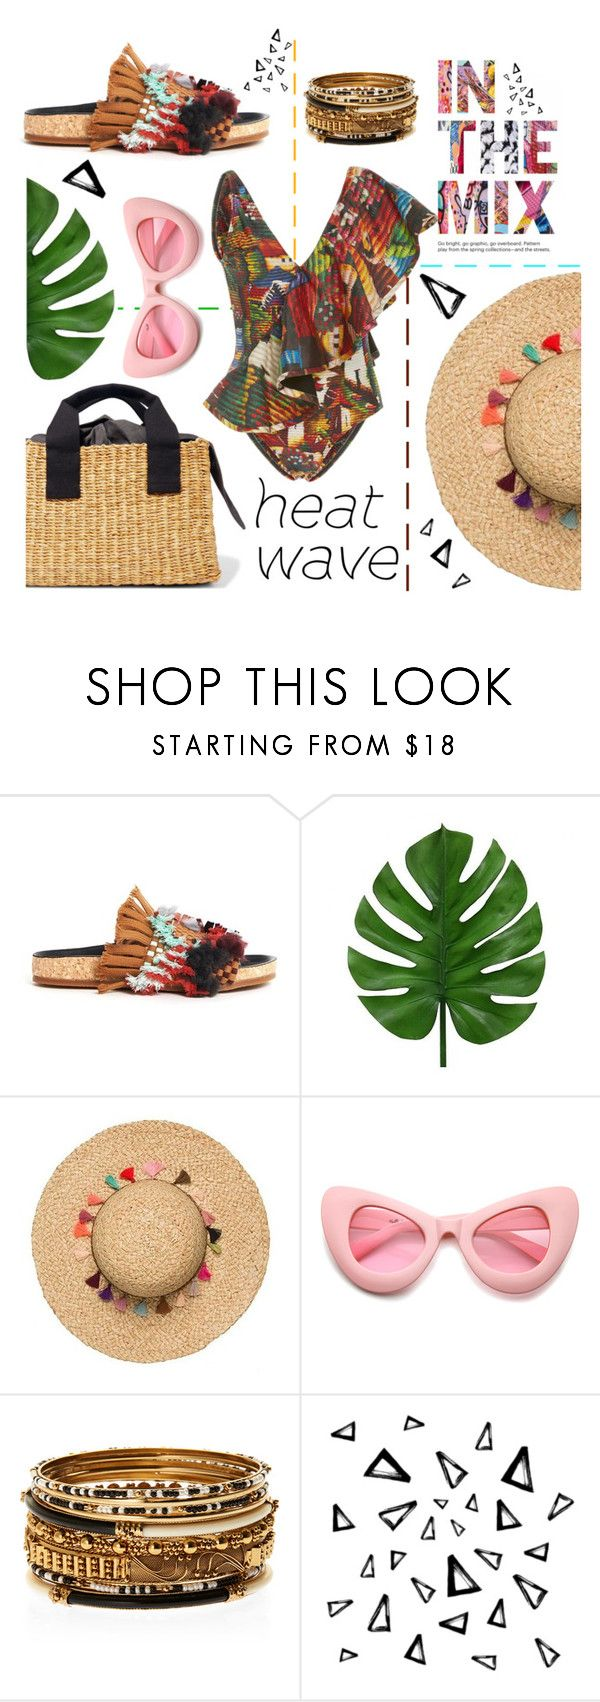 """""""beach party"""" by evelin93 ❤ liked on Polyvore featuring Chloé, Água de Coco, ZeroUV, Amrita Singh, Nika and heatwaves"""